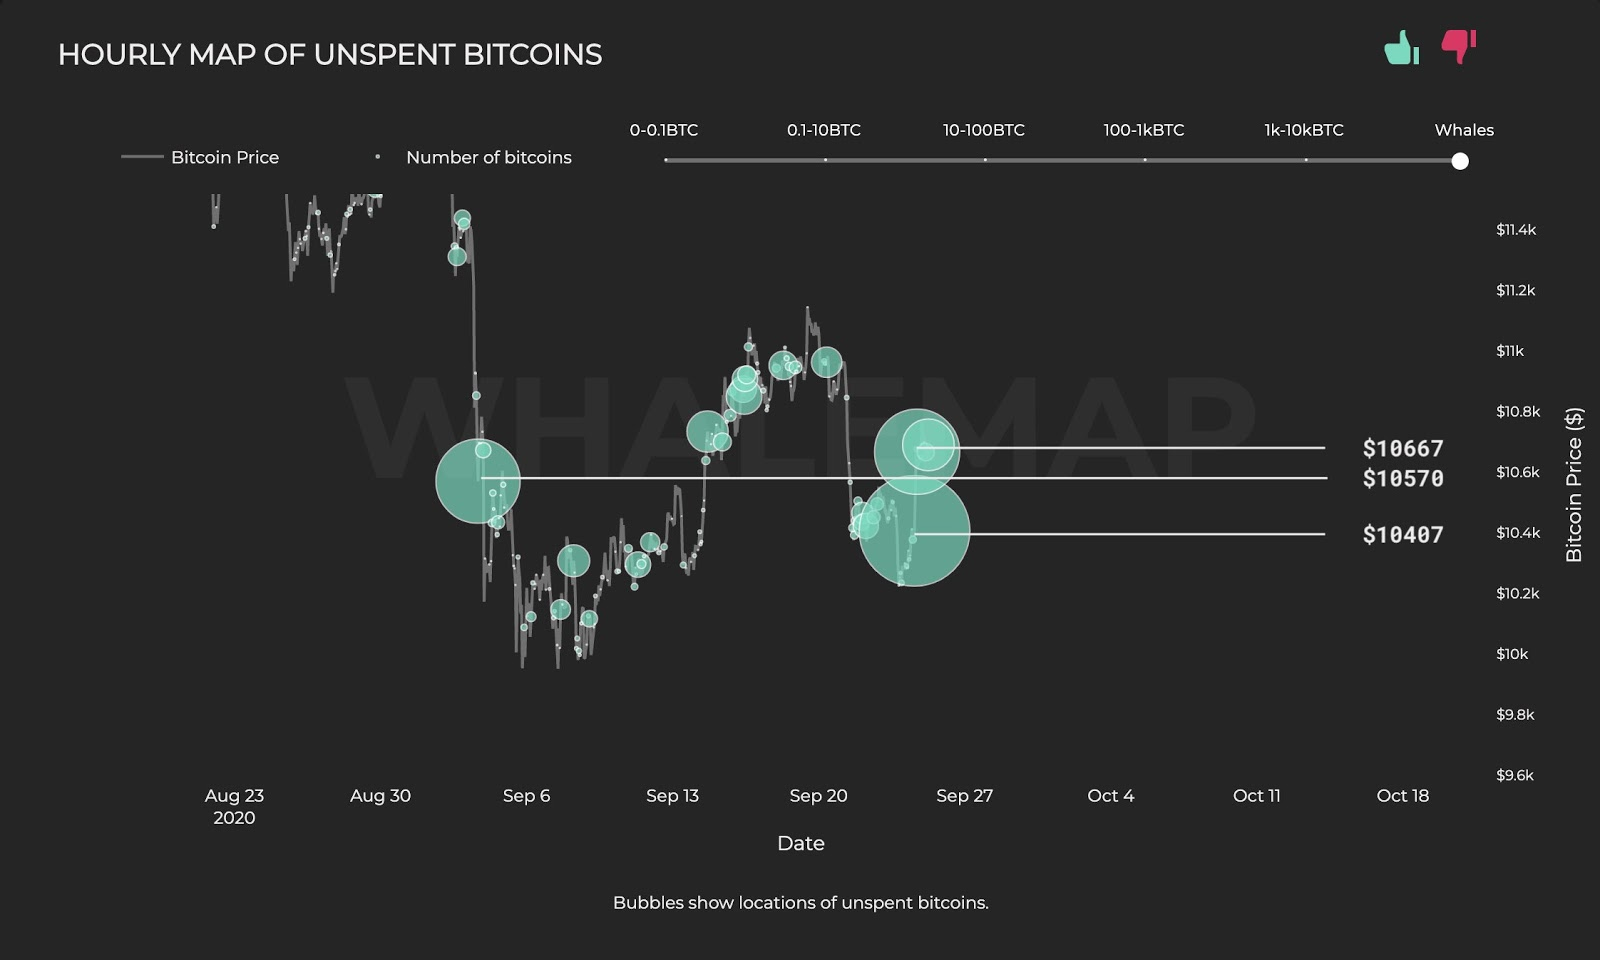 The hourly map of Bitcoin whale clusters